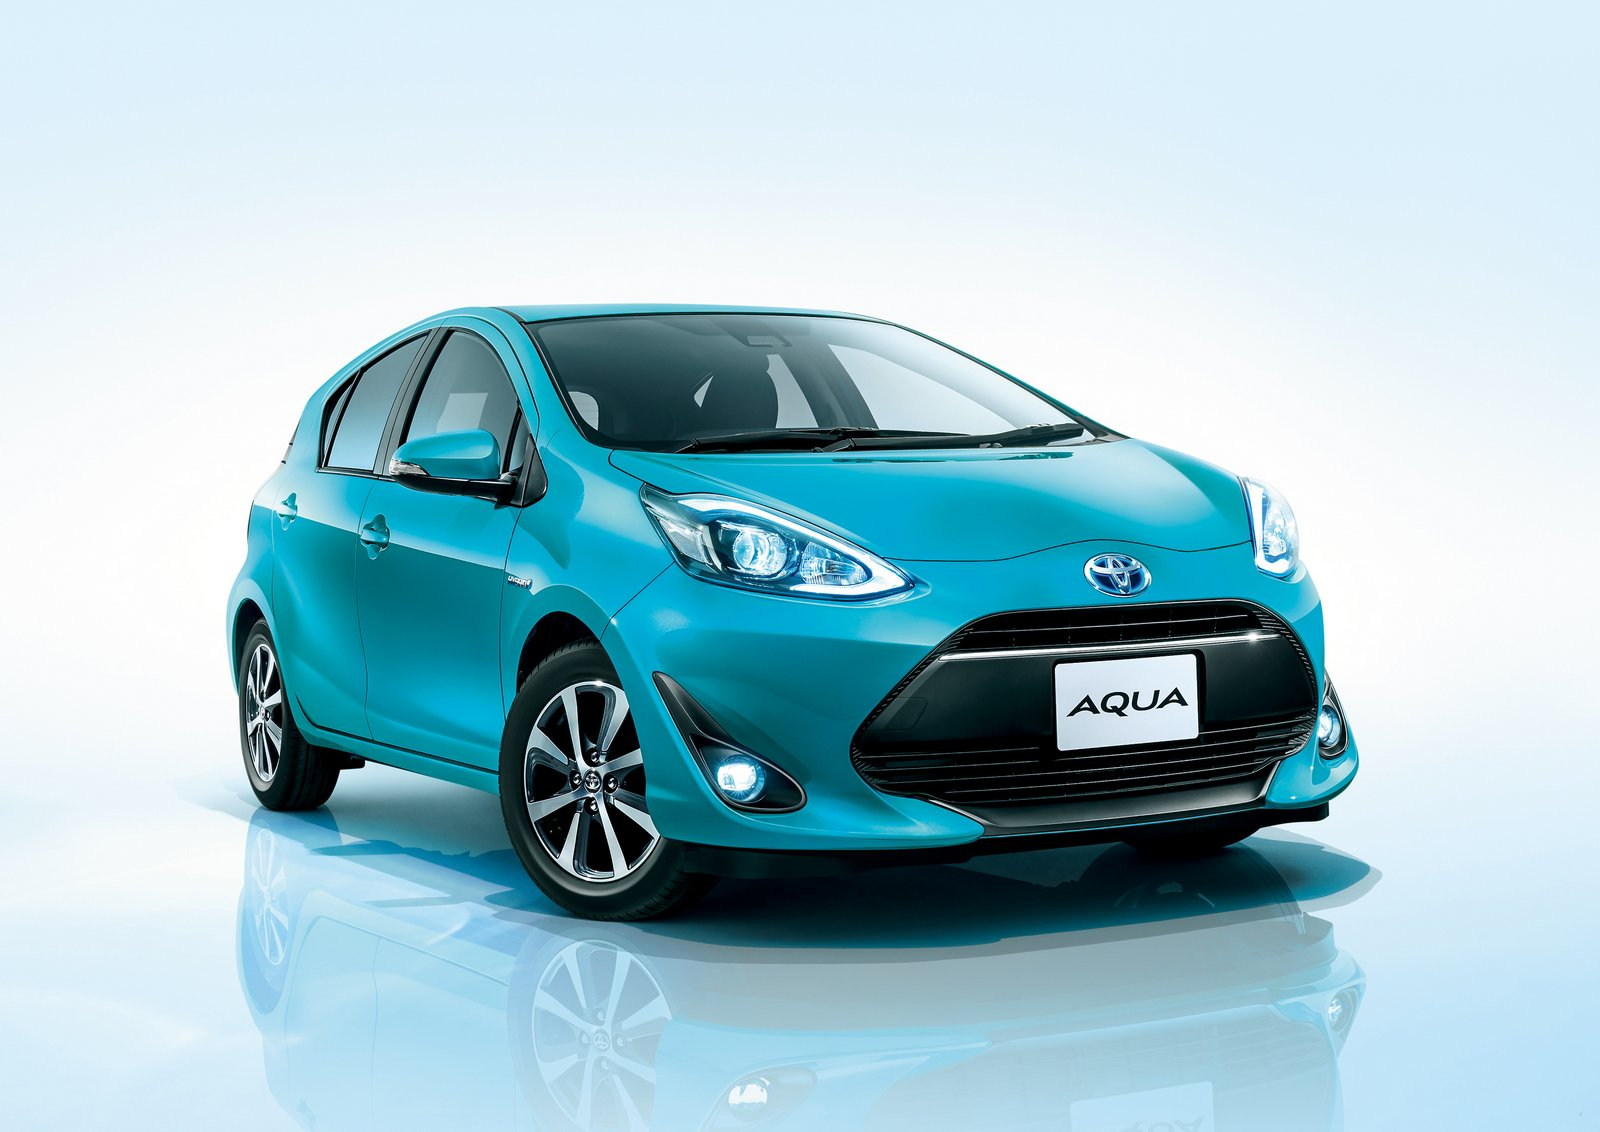 Toyota Aqua Aka The Prius C Gets A Facelift And A New ...